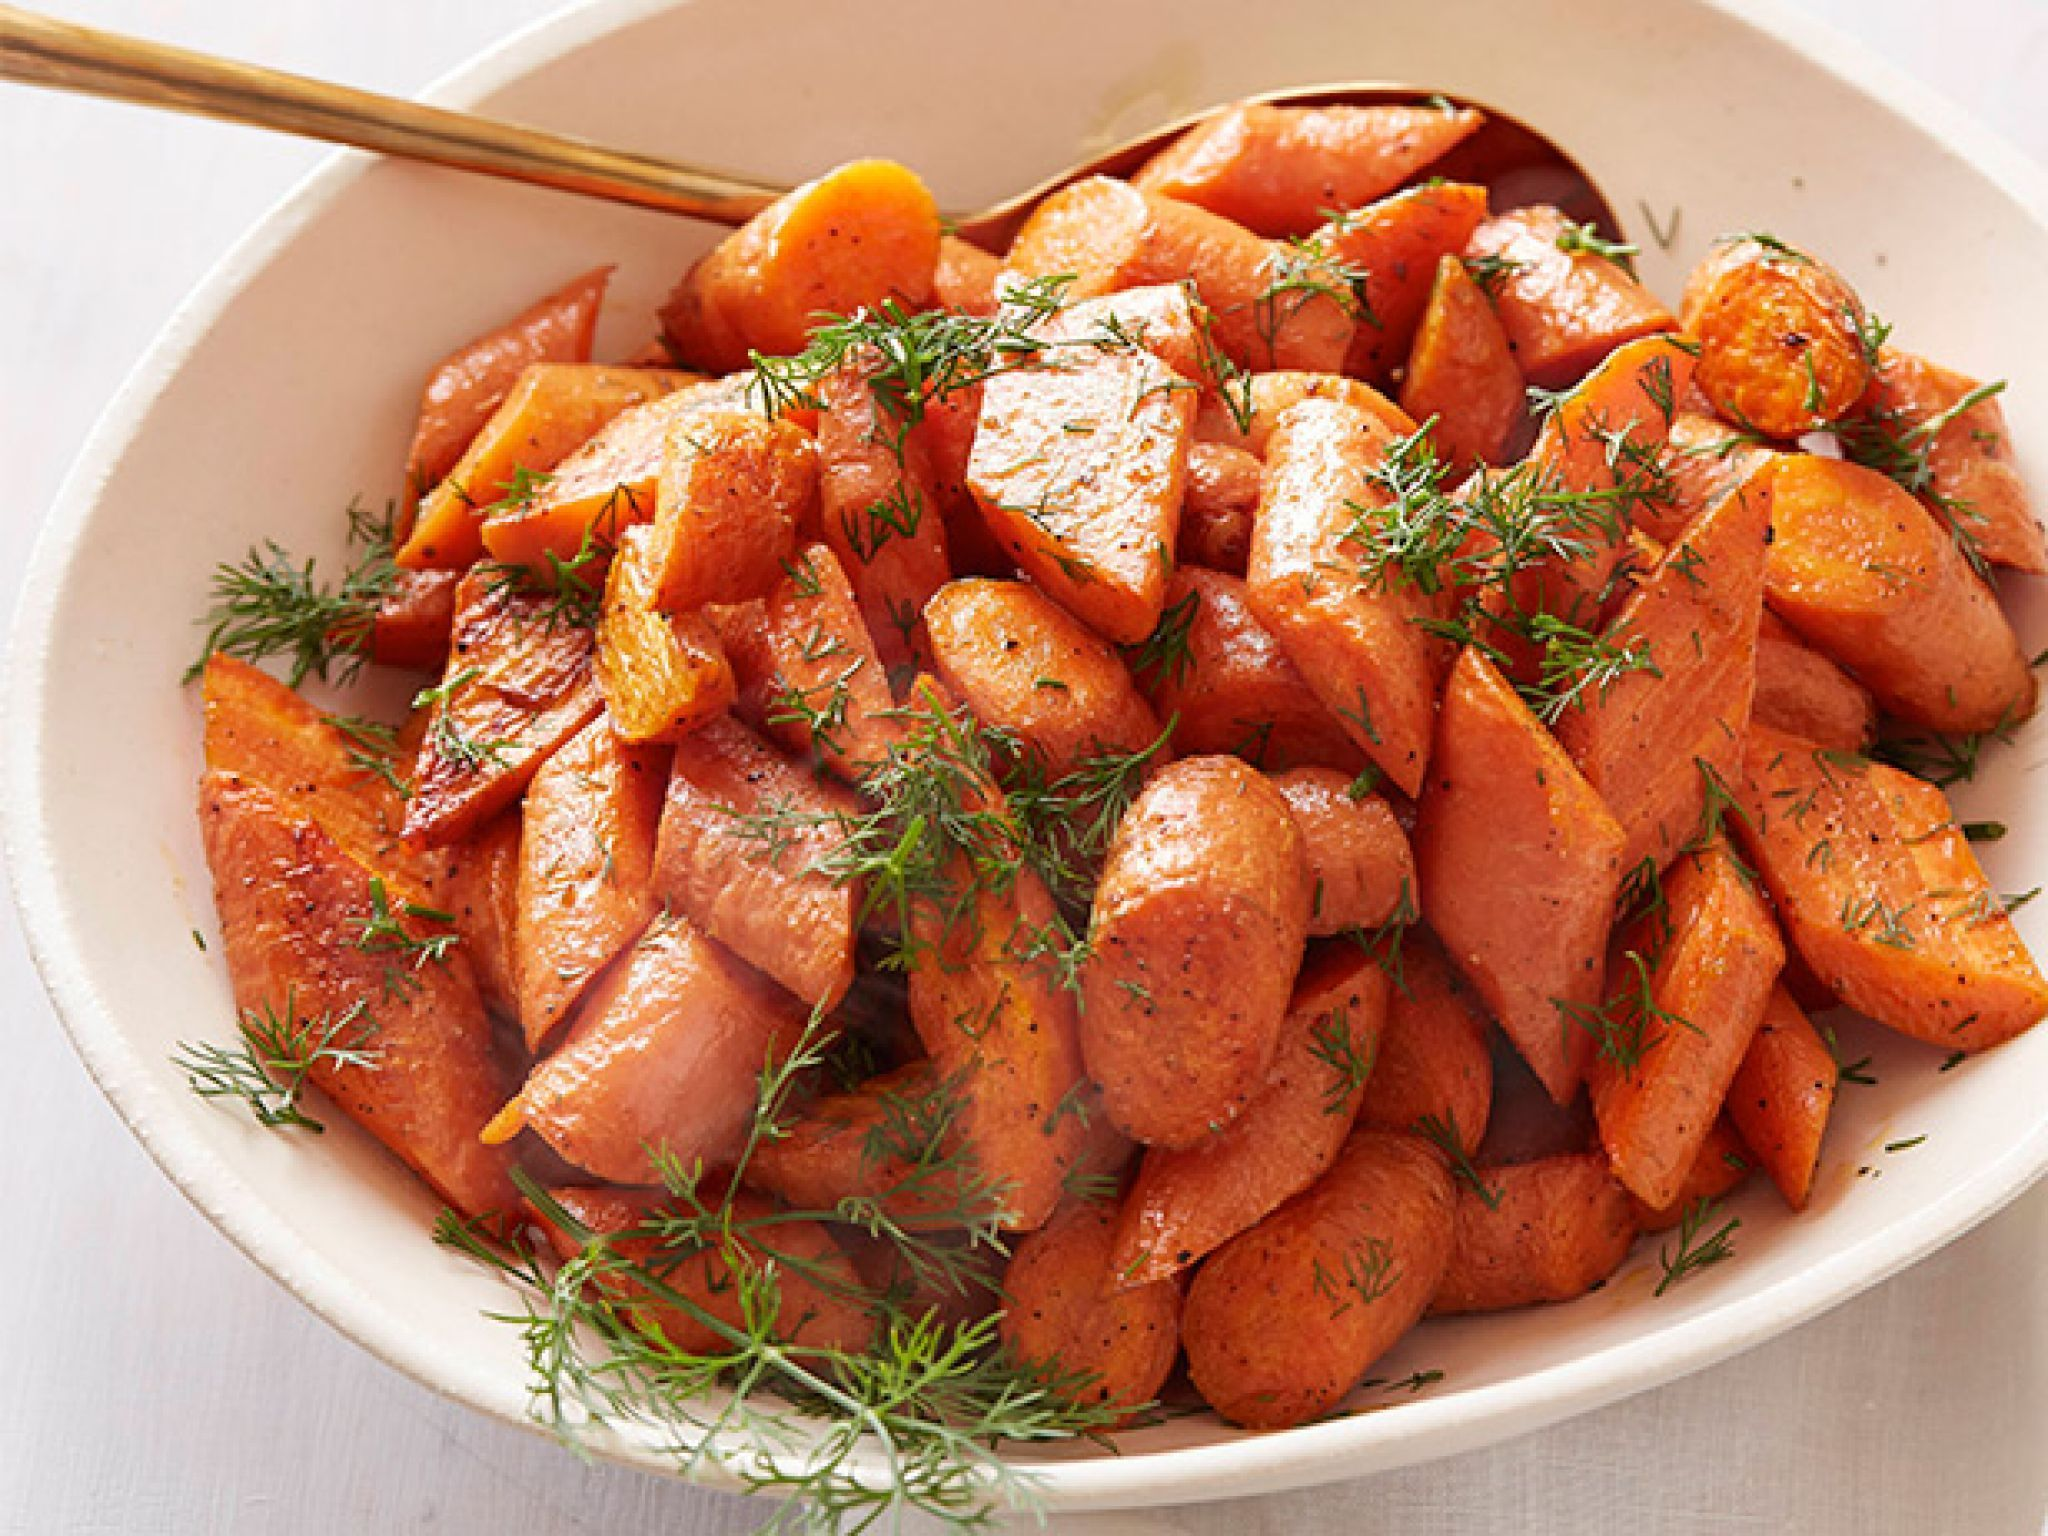 all-star, easy-to-follow Roasted Carrots recipe from Ina GartenGet this all-star, easy-to-follow Roasted Carrots recipe from Ina Gartenthis all-star, easy-to-follow Roasted Carrots recipe from Ina GartenGet this all-star, easy-to-follow Roasted Carrots recipe from Ina Garten